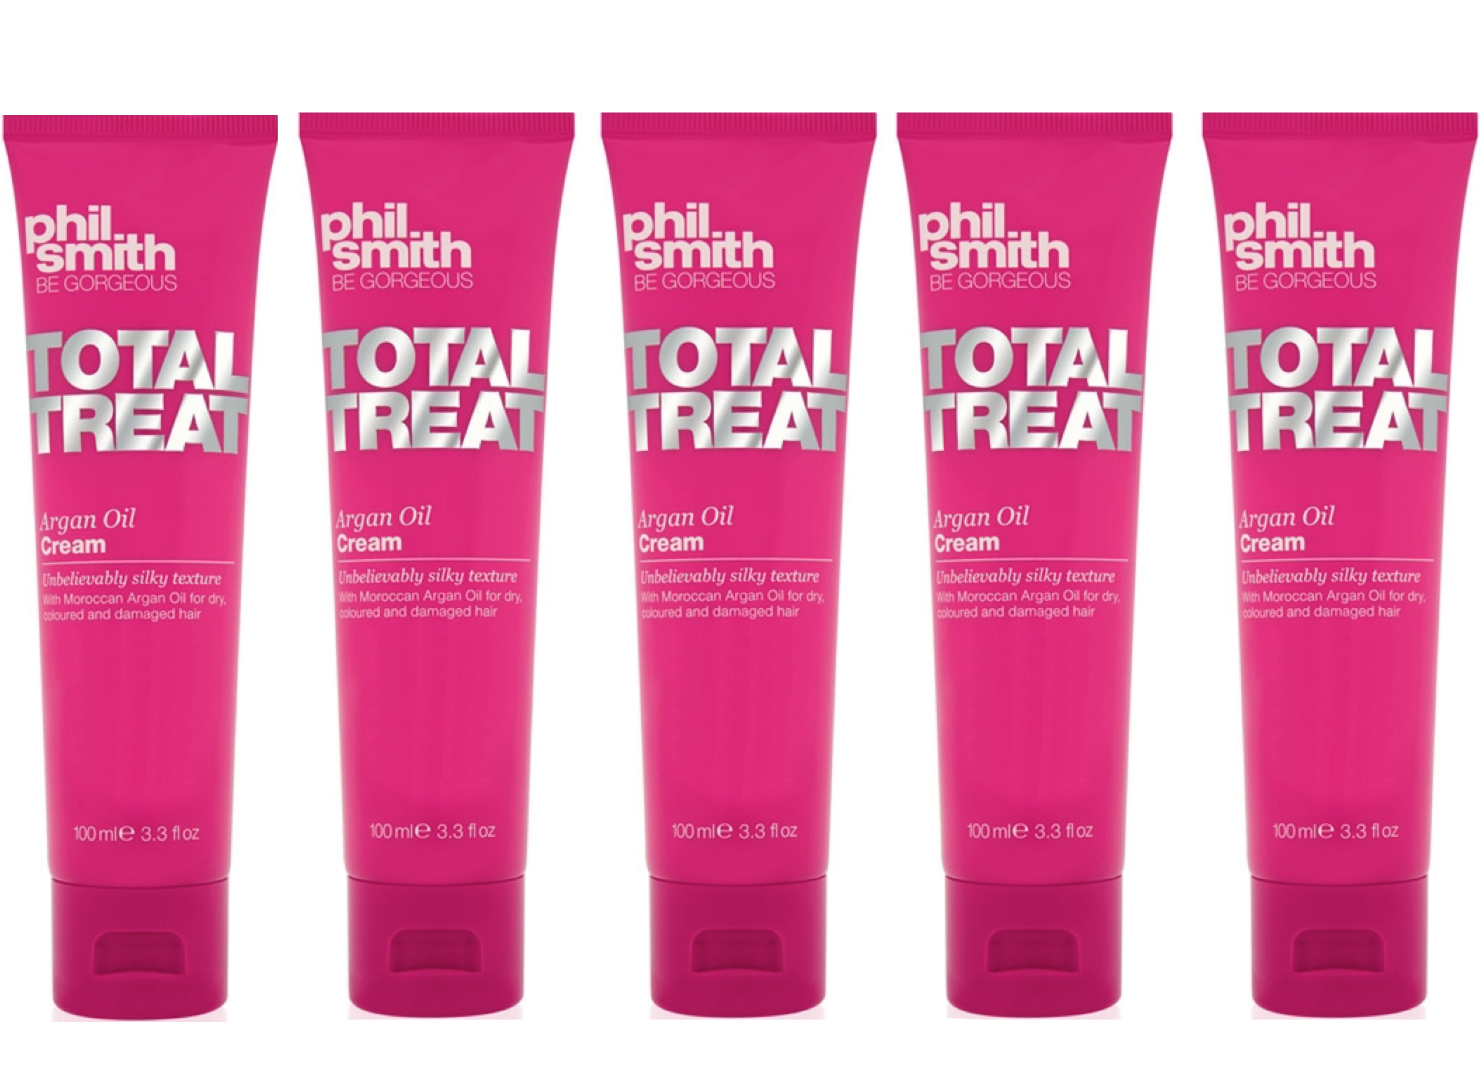 Win Total Treat arabian oil from Paul Smith - pretty big butterflies